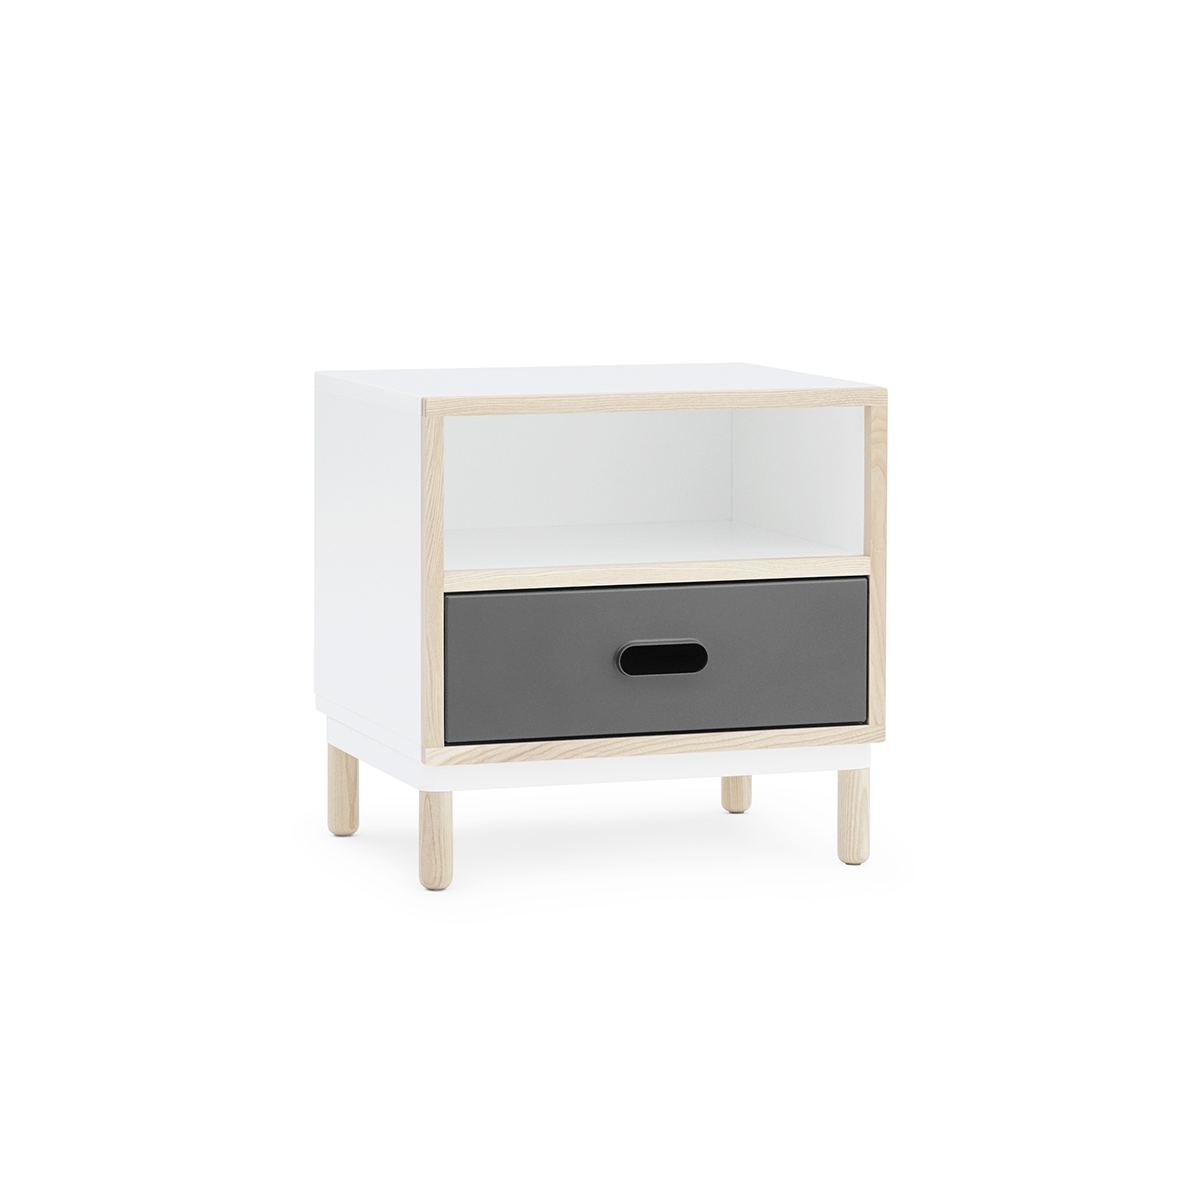 Normann Copenhagen Kabino Bedside Table 卡賓諾 床頭櫃 雙層收納